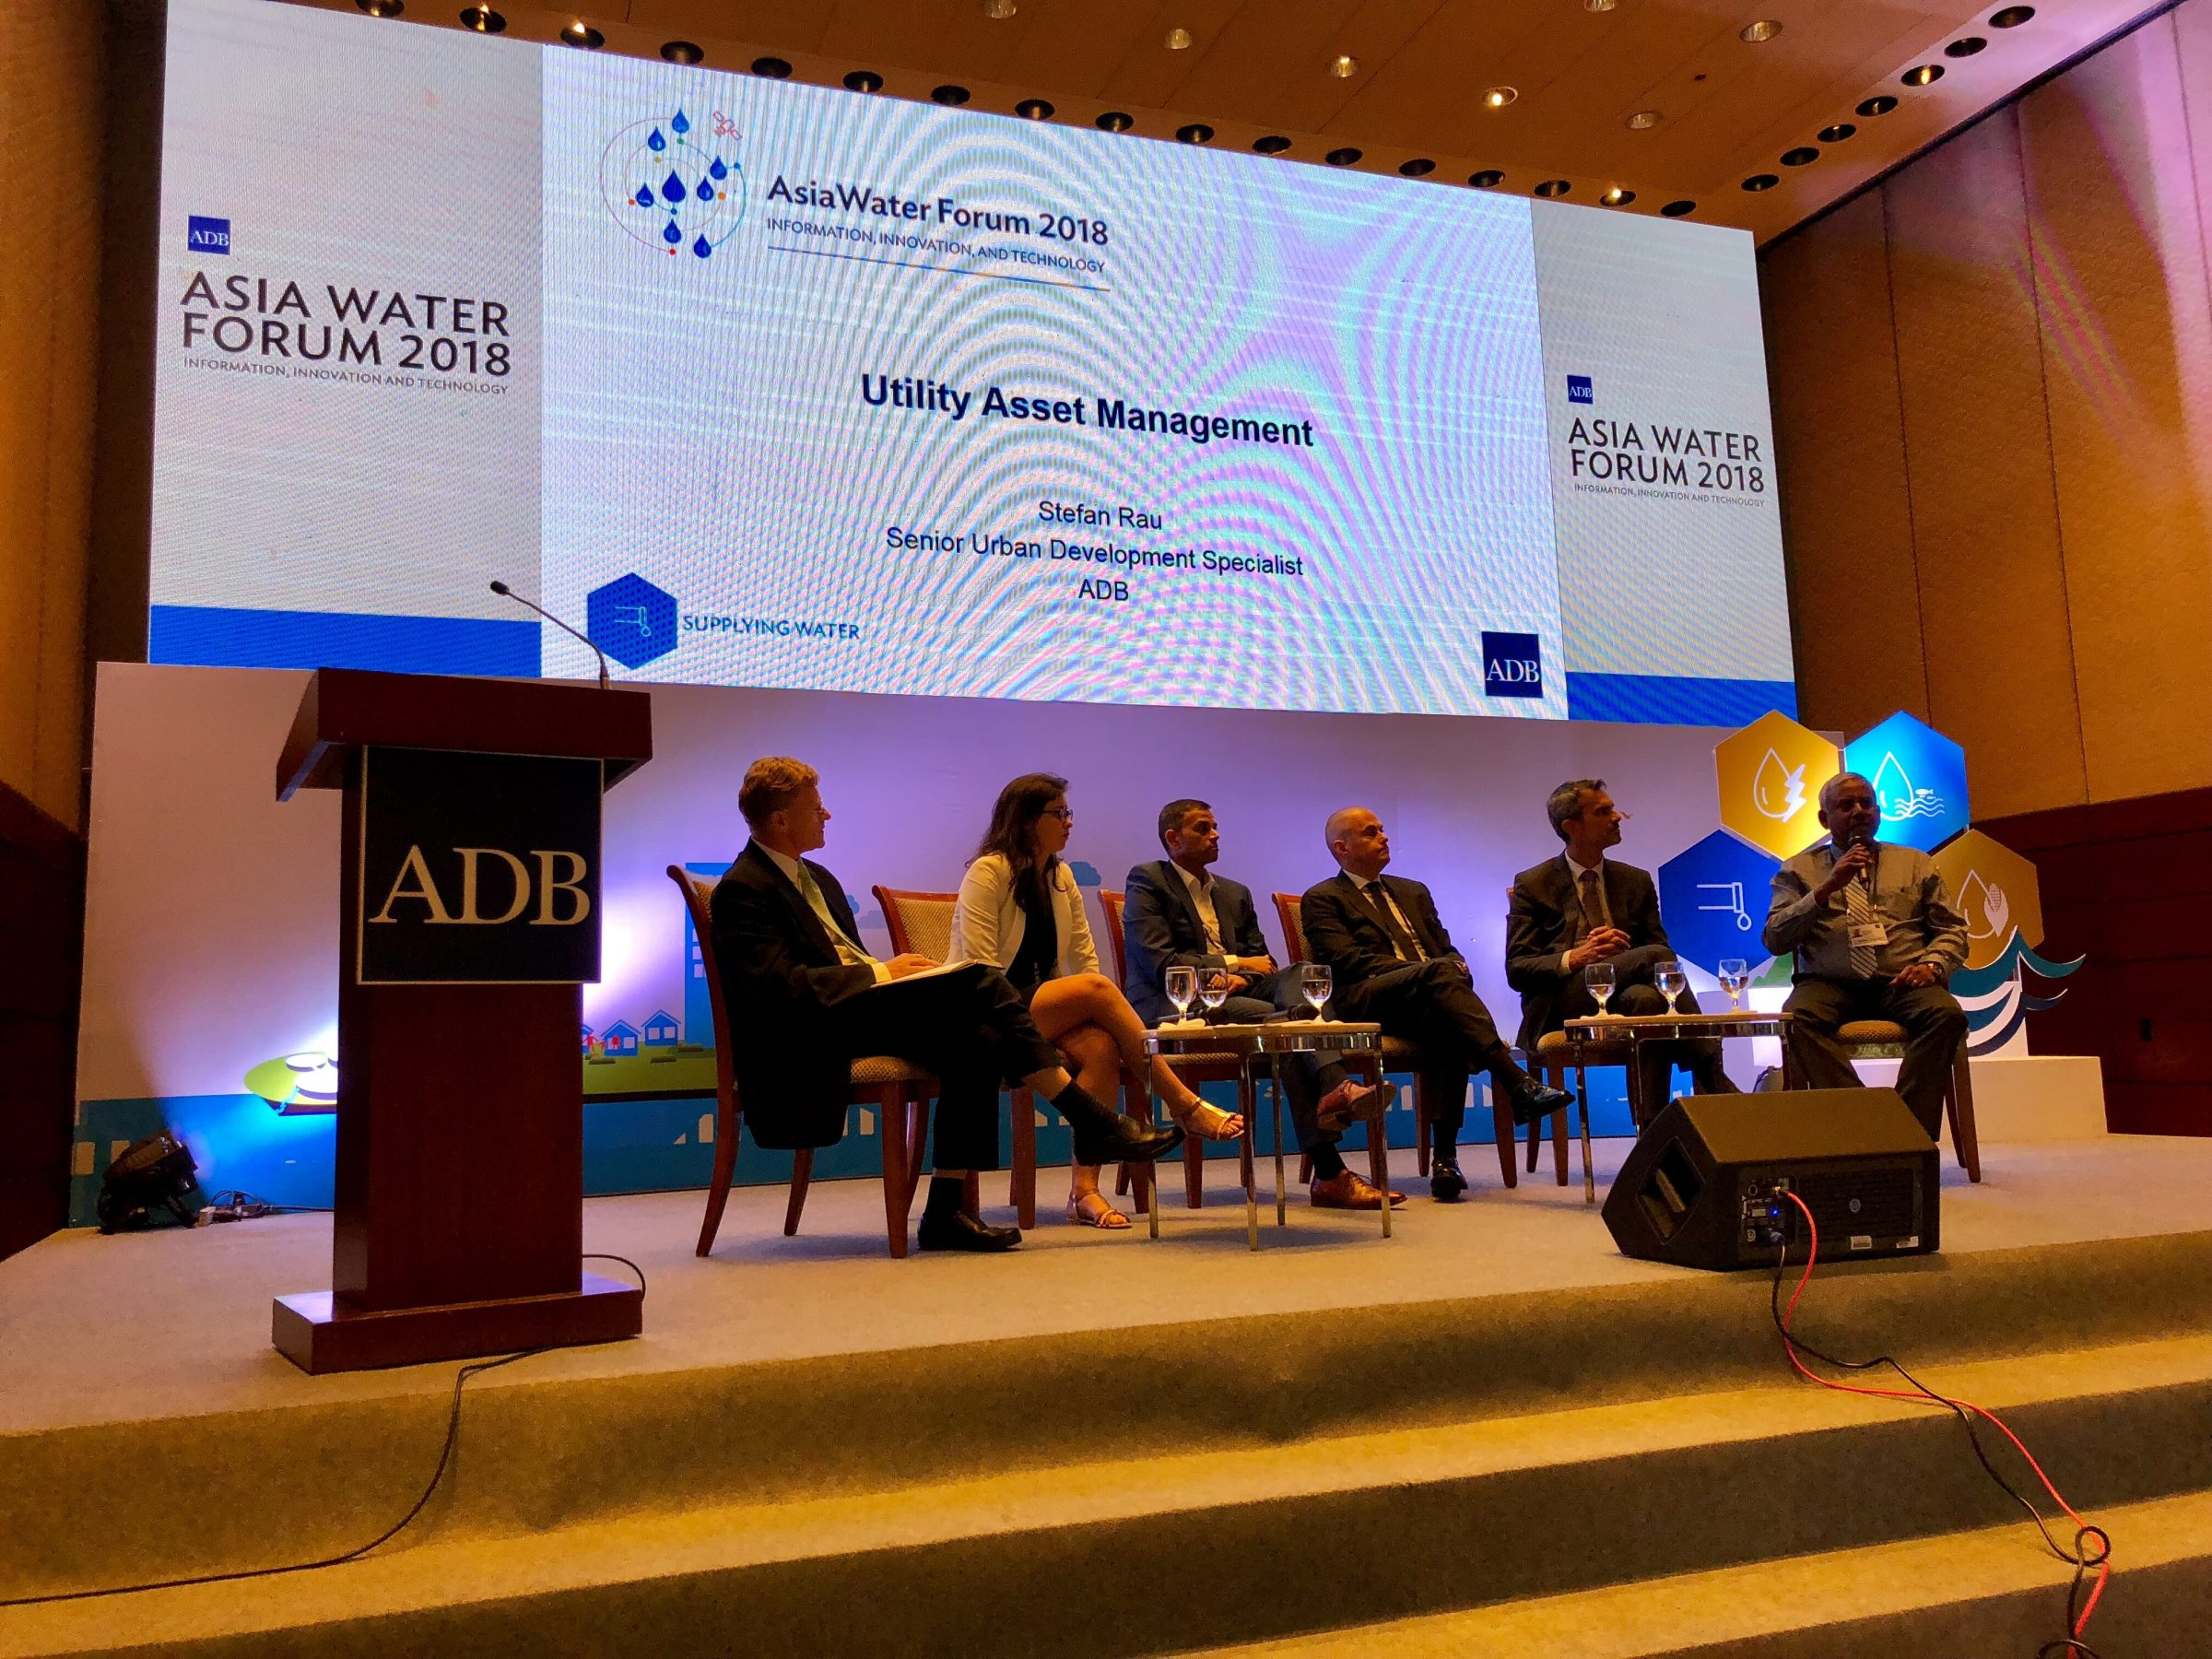 GIS for water utility asset management, Asia Water Forum, Nobel Systems